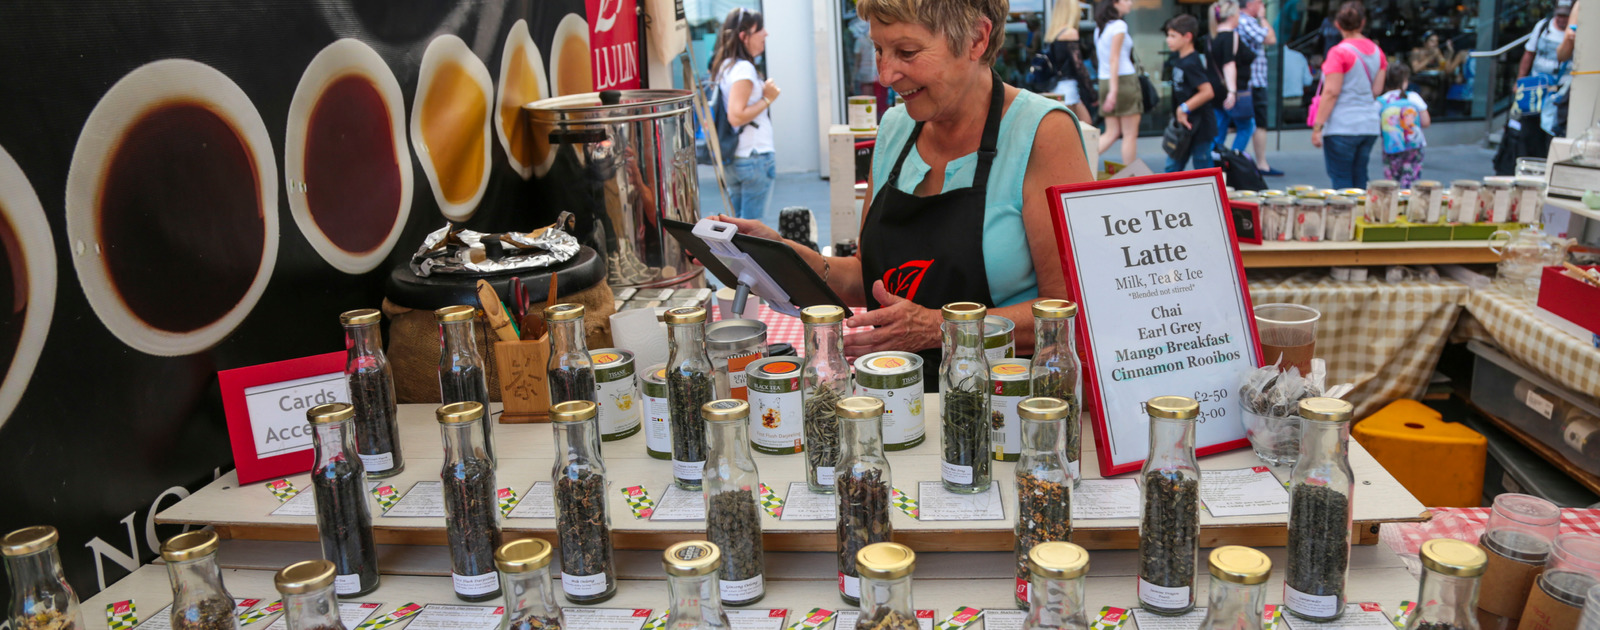 Lulin Teas Stall at the Southbank Centre Food Market